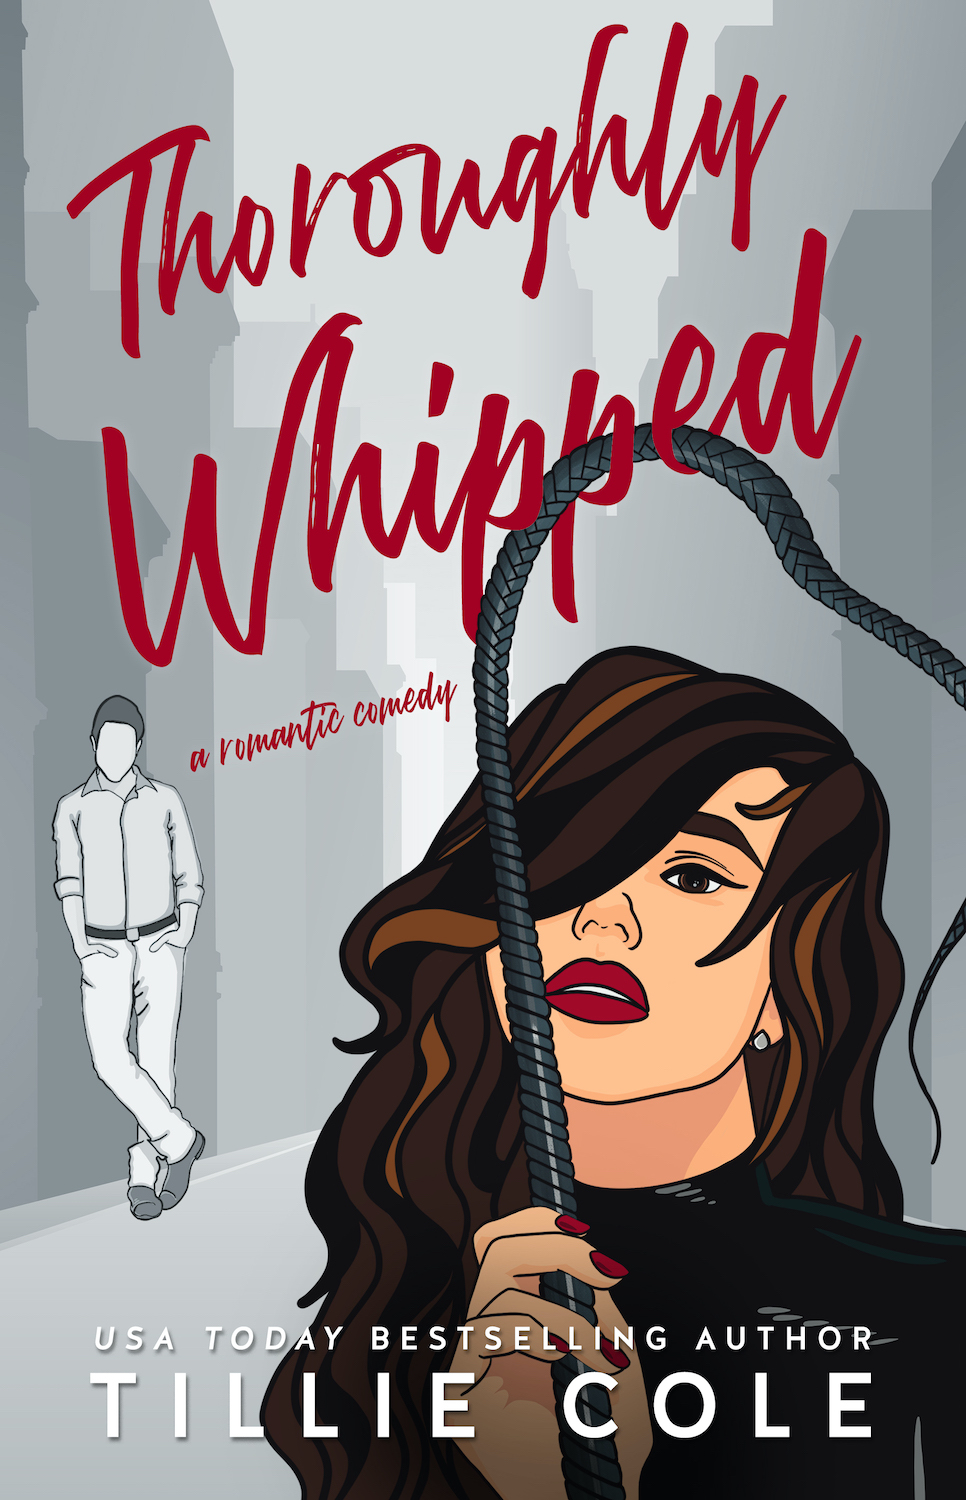 Thoroughly Whipped - Tillie Cole